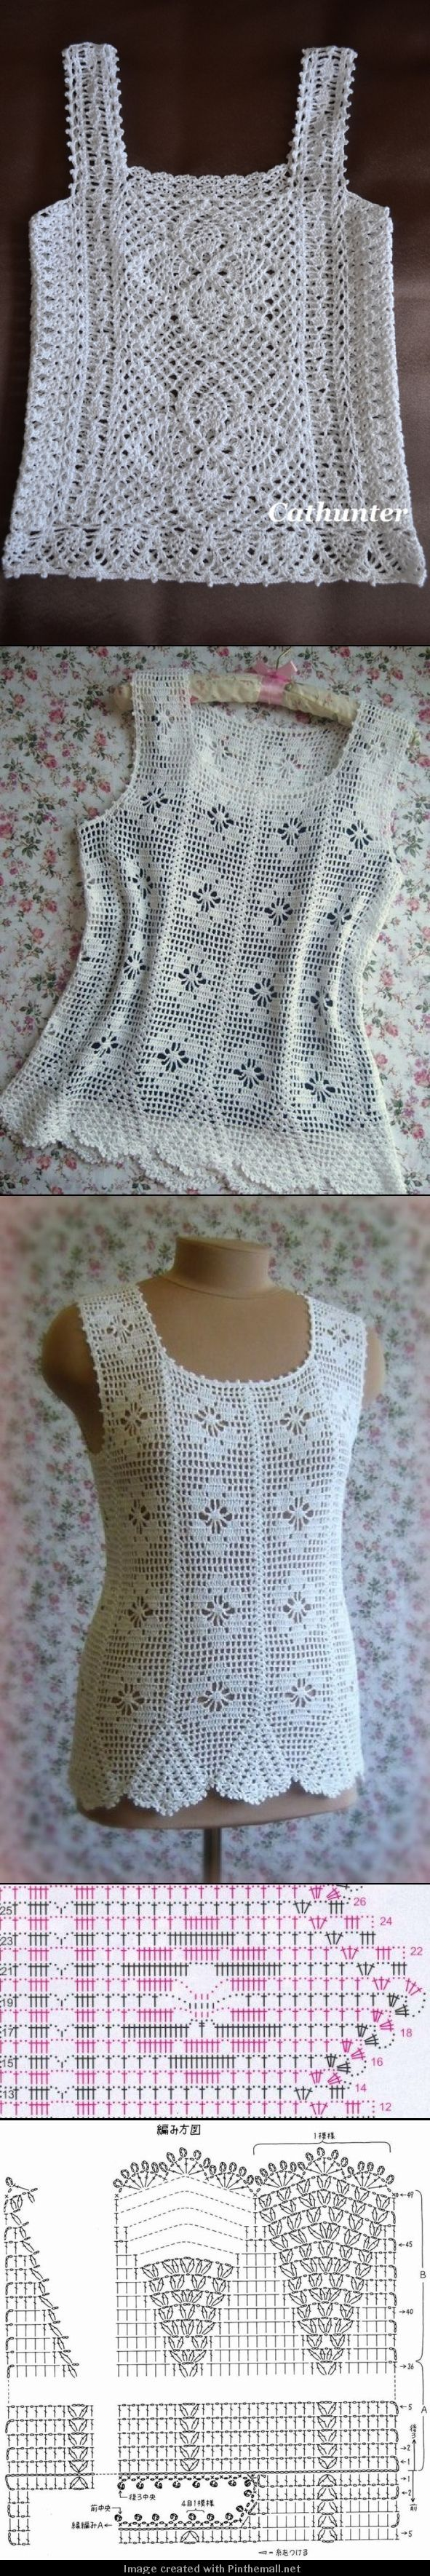 white lace top, crochet blouse, crochet top, summer top, crochet top pattern, crochet blouse chart